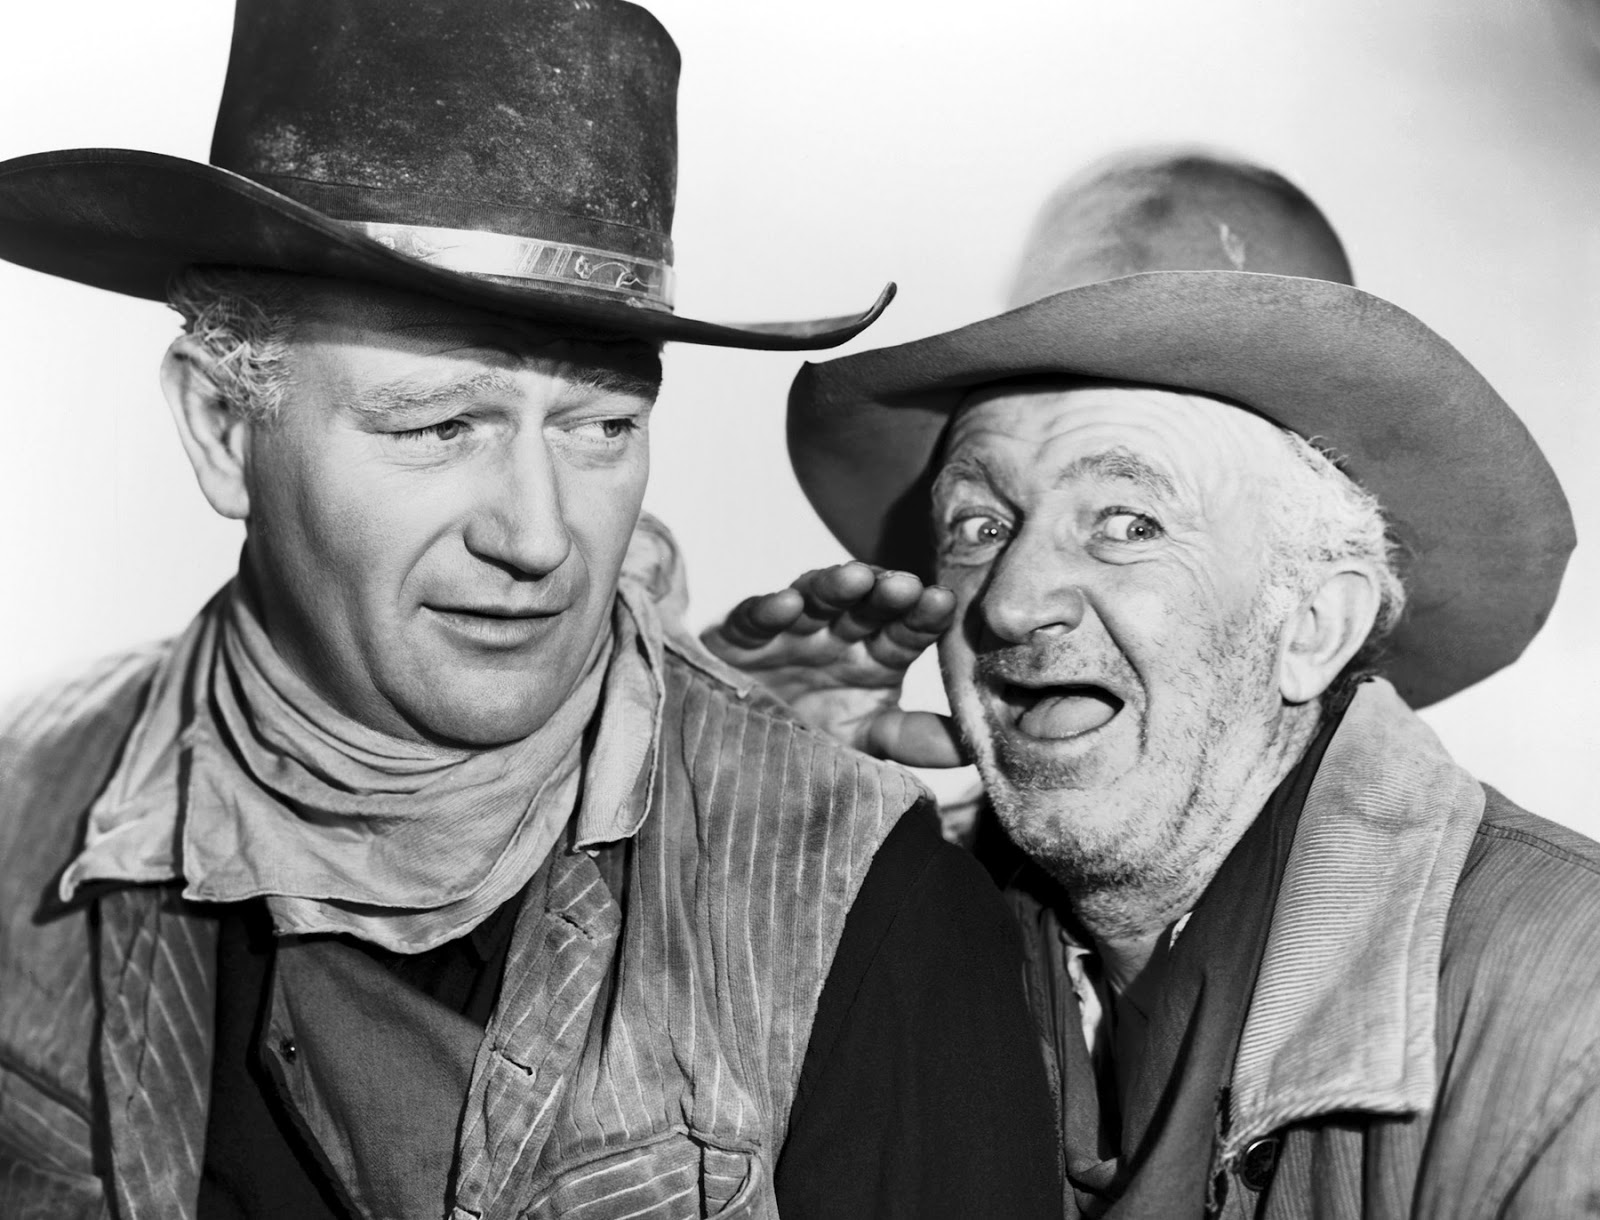 Nadine Groot in Red River John Wayen and Walter Brennan